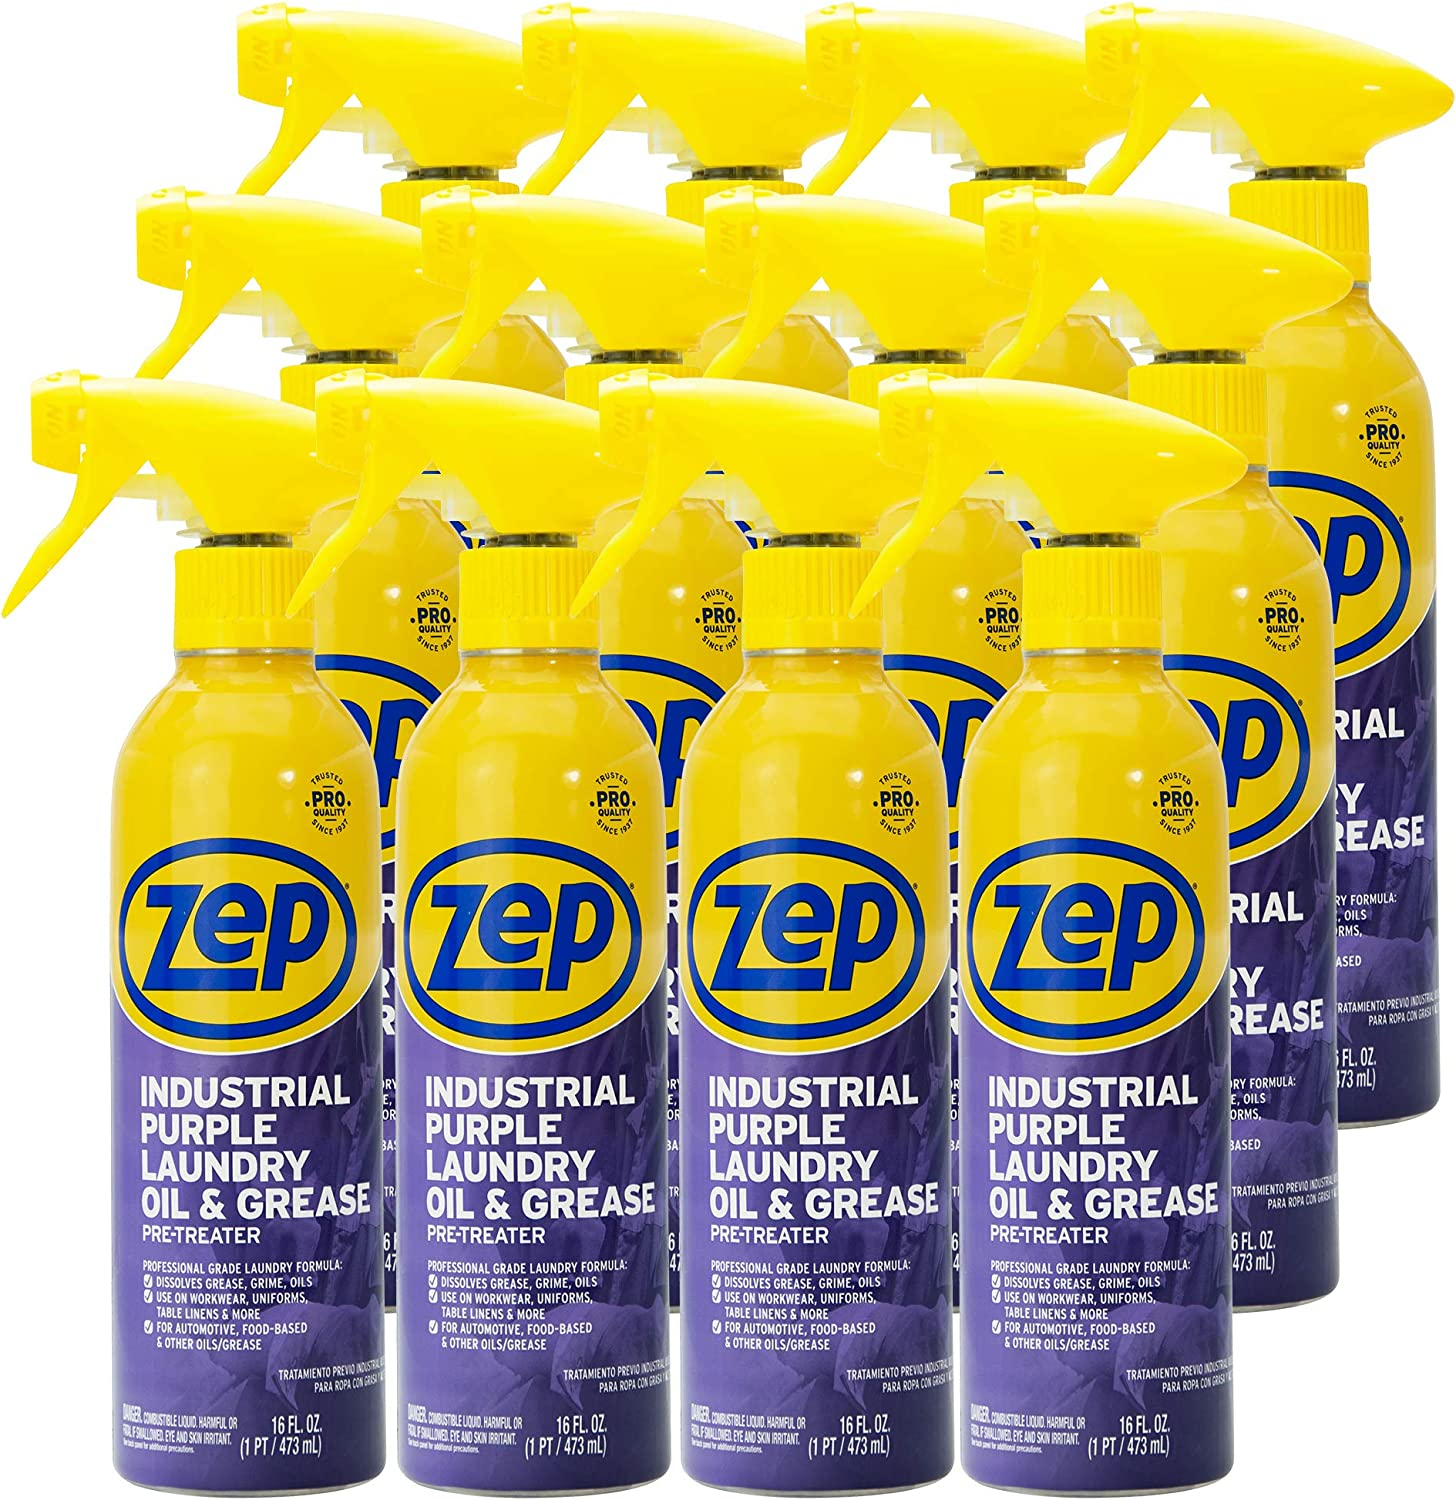 Zep Industrial Purple Laundry Oil and Grease Stain Lifter and Pre-Treater (Case of 12) - For Industrial Grease and Food Grease